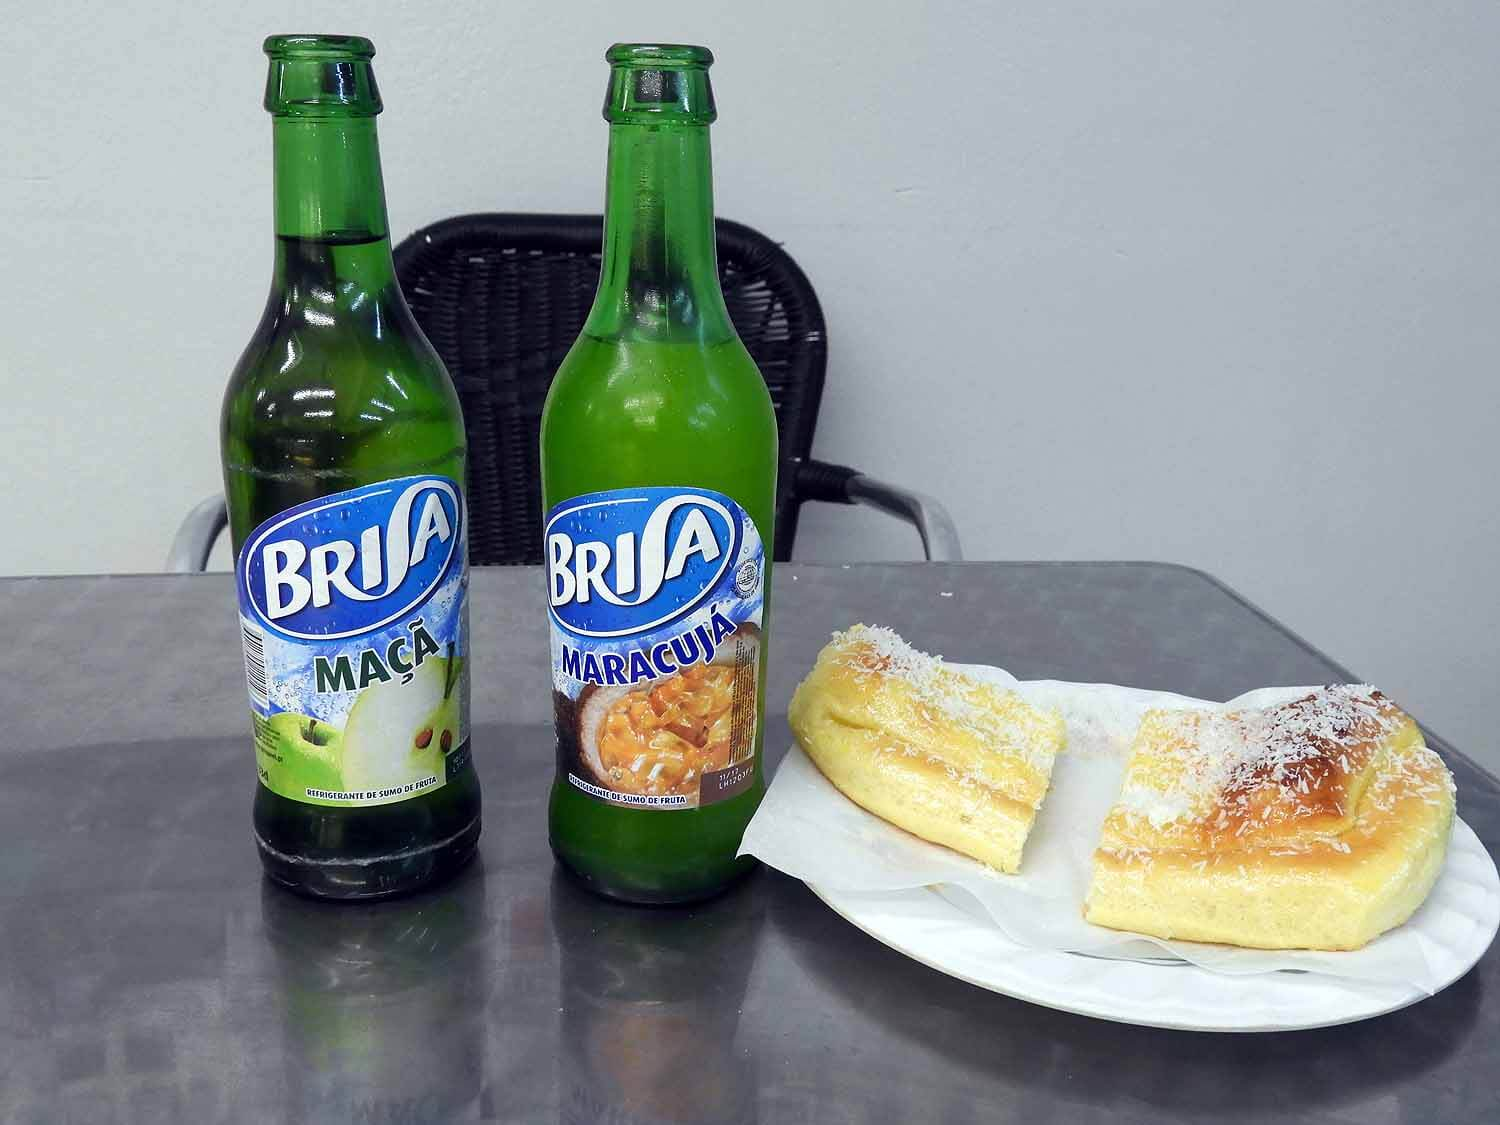 Drink Like a Local: Brisa Soft Drink - For the past 50 years Brisa has locally bottled carbonated tropical fruit juices. Brisa Maracujá was the world's frist soft drink produced from pure passion fruit juice.